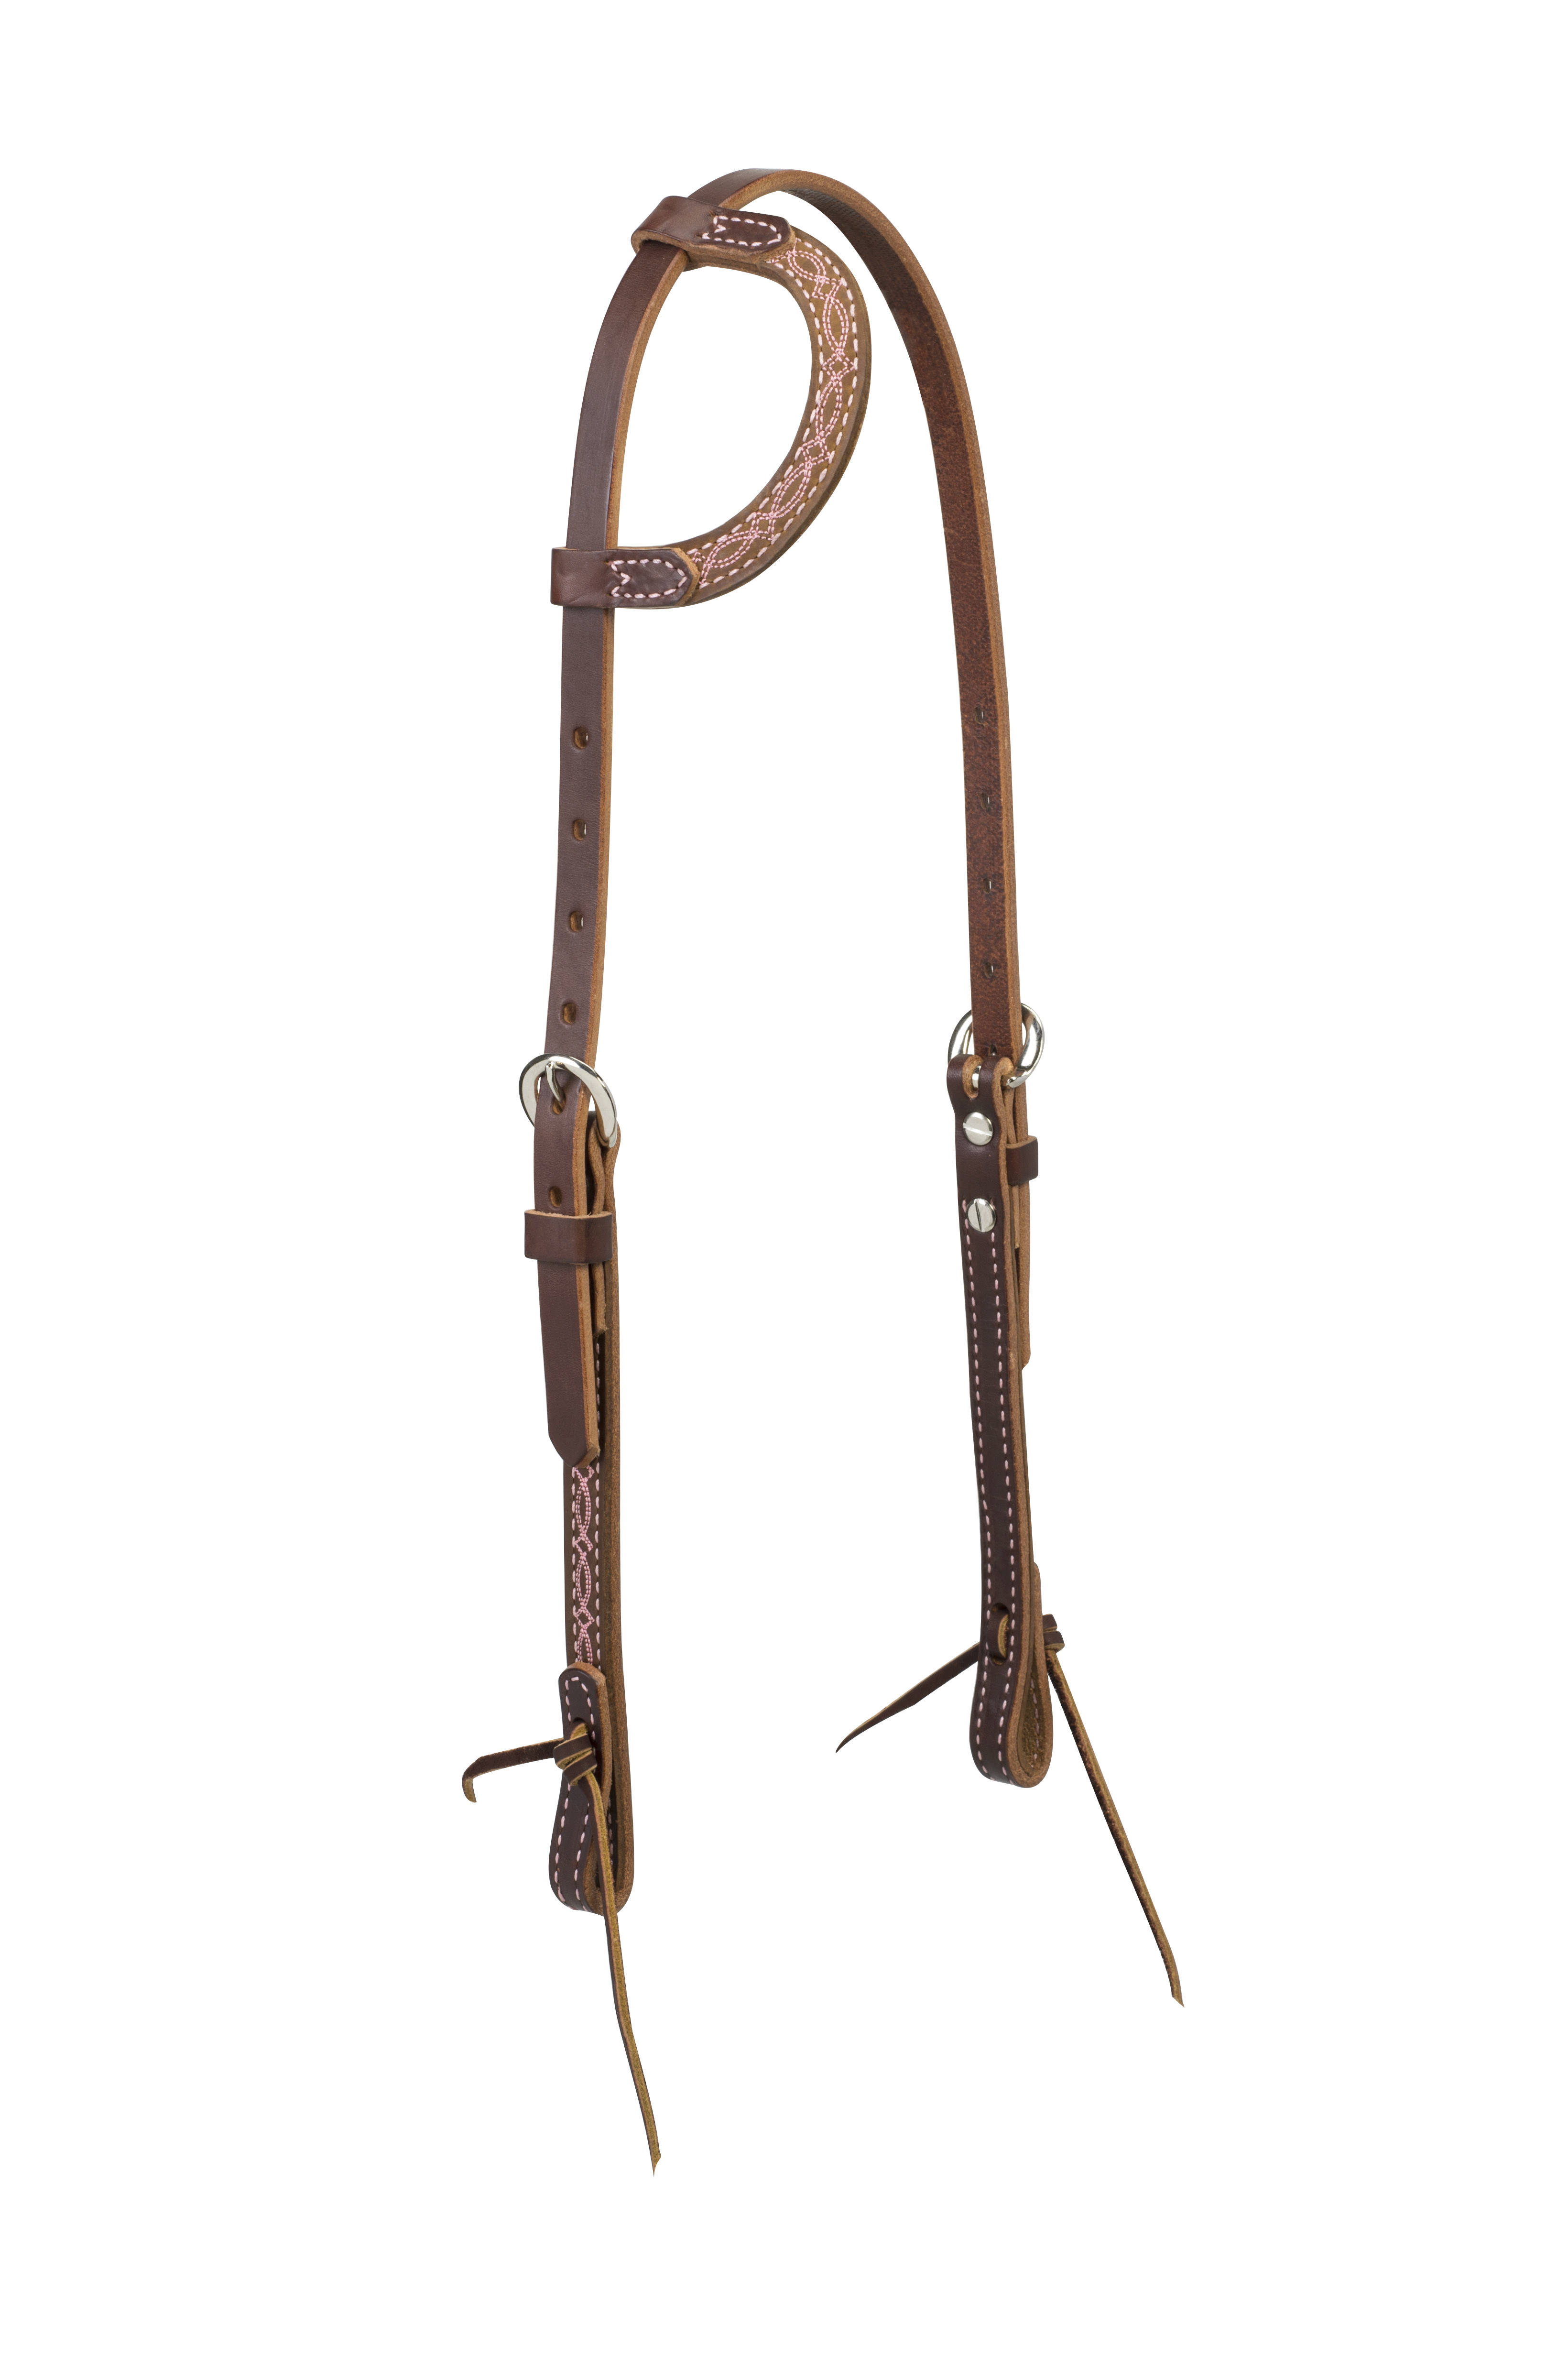 Weaver Harness Leather Boot Stitch Sliding Ear Headstall